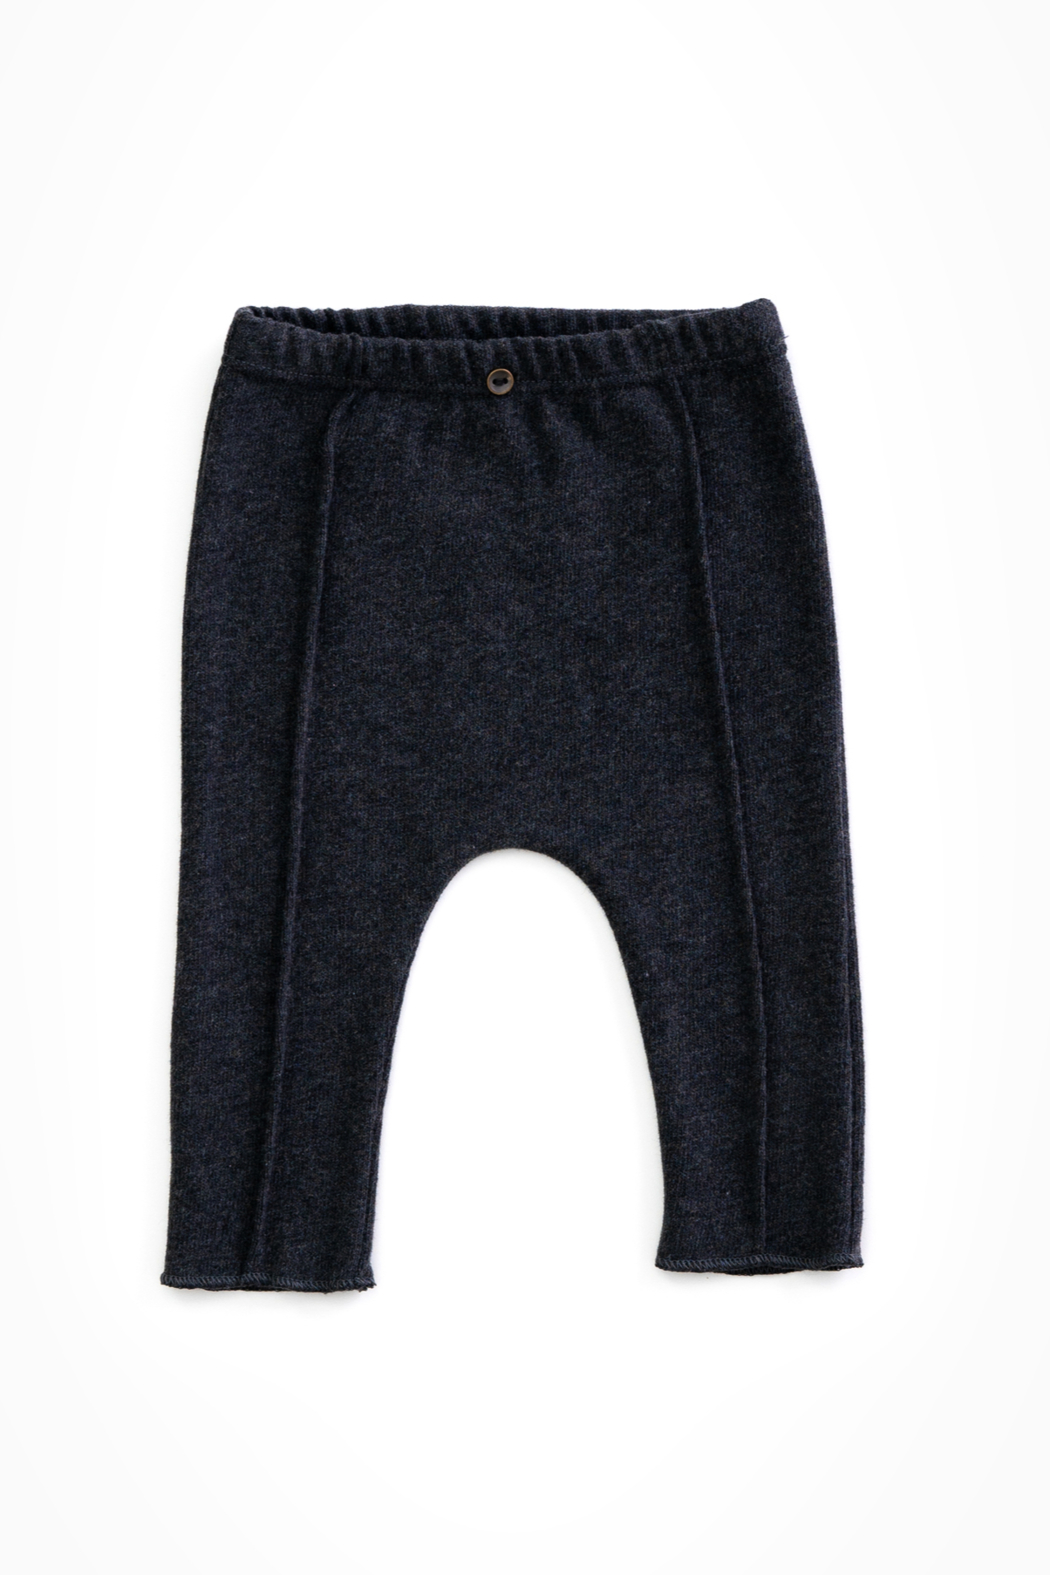 Play Up Organic Cotton Jersey Trousers For Boys - Main Image